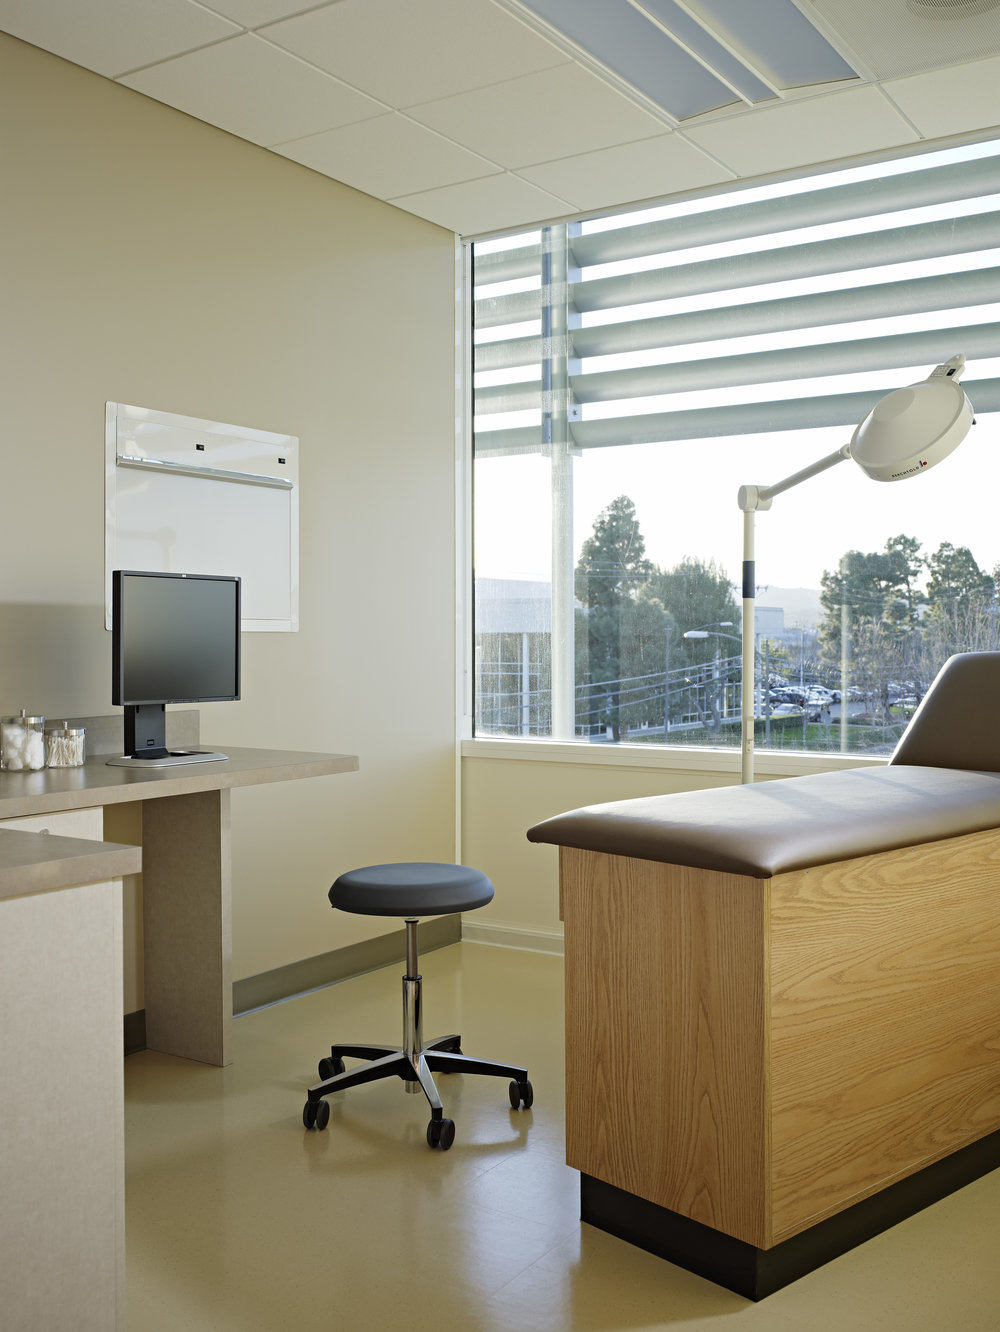 stanford-hospital-outpatient-ctr-int09.jpg